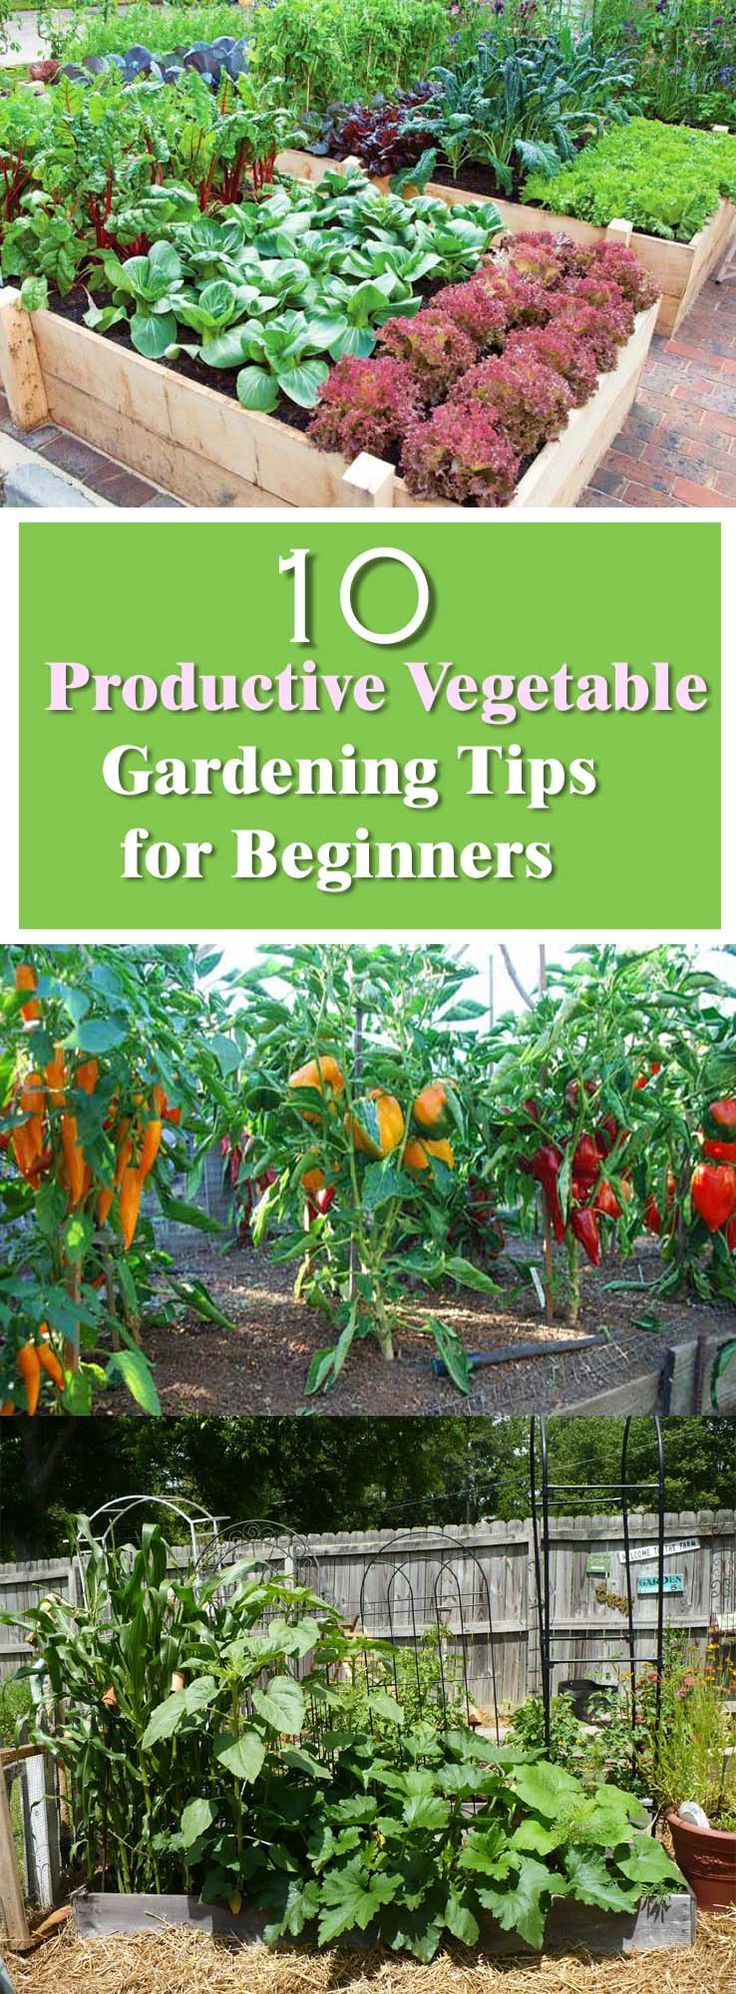 4 Ideas to Help You Develop Gardening Skills